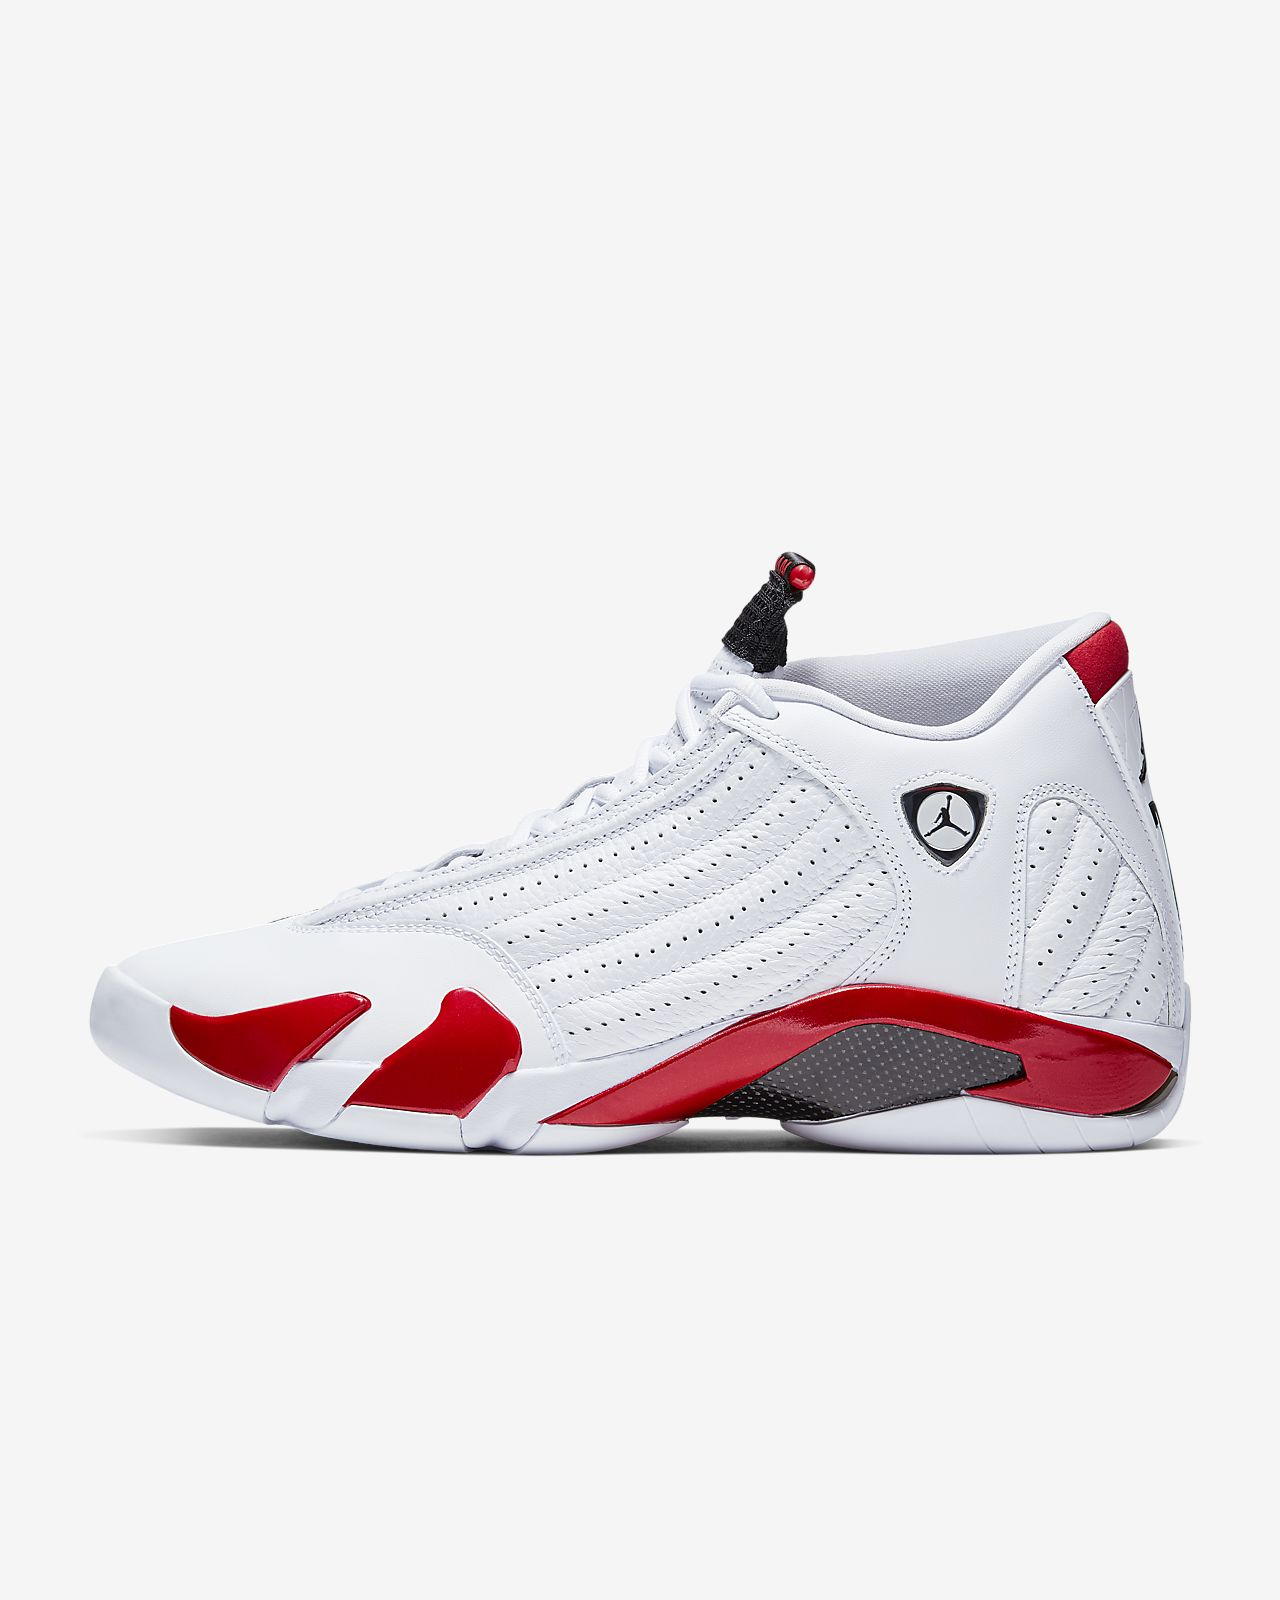 cheap for discount 3e66c 2397b ... Air Jordan 14 Retro sko för män